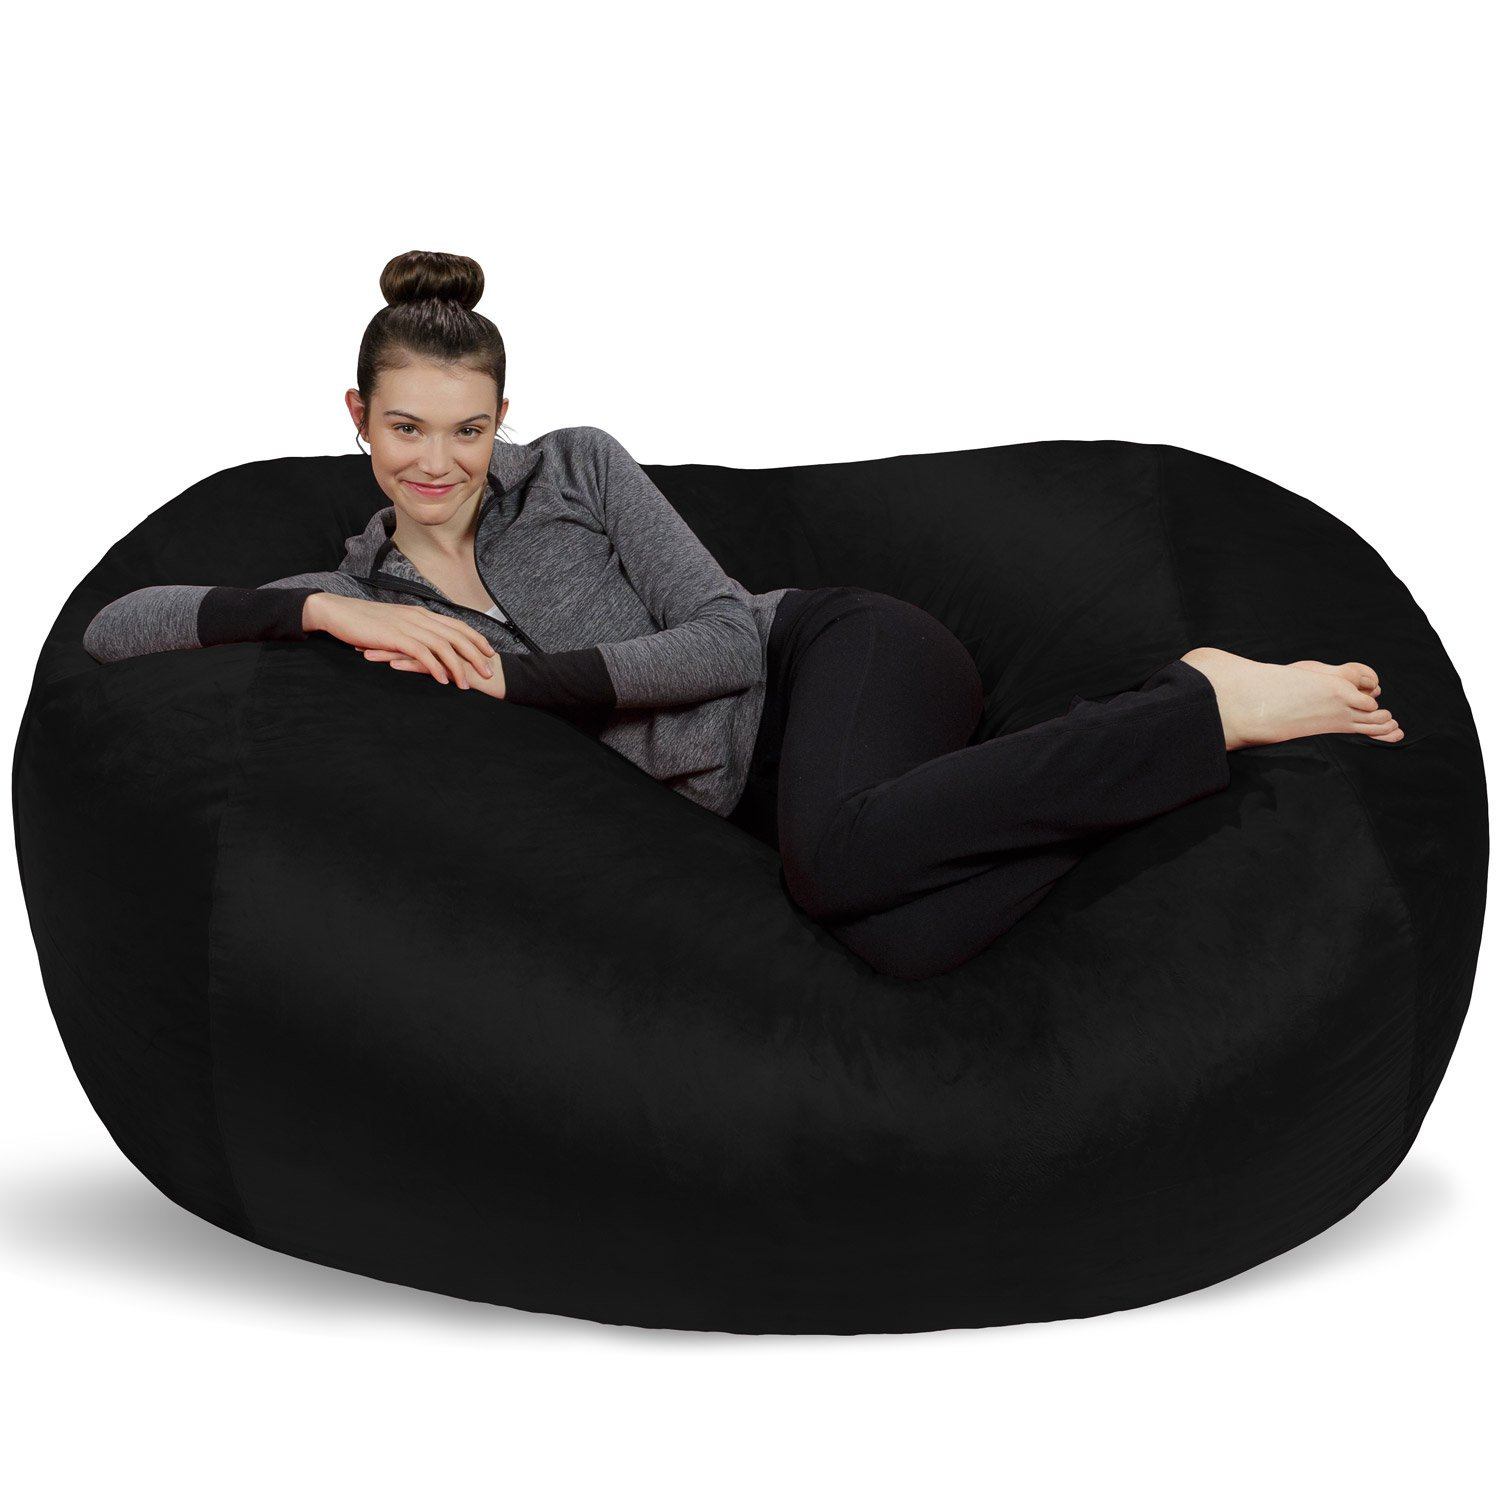 Bean bag chairs for adults - Sofa Sack Bean Bags 6 Feet Bean Bag Lounger Large Black